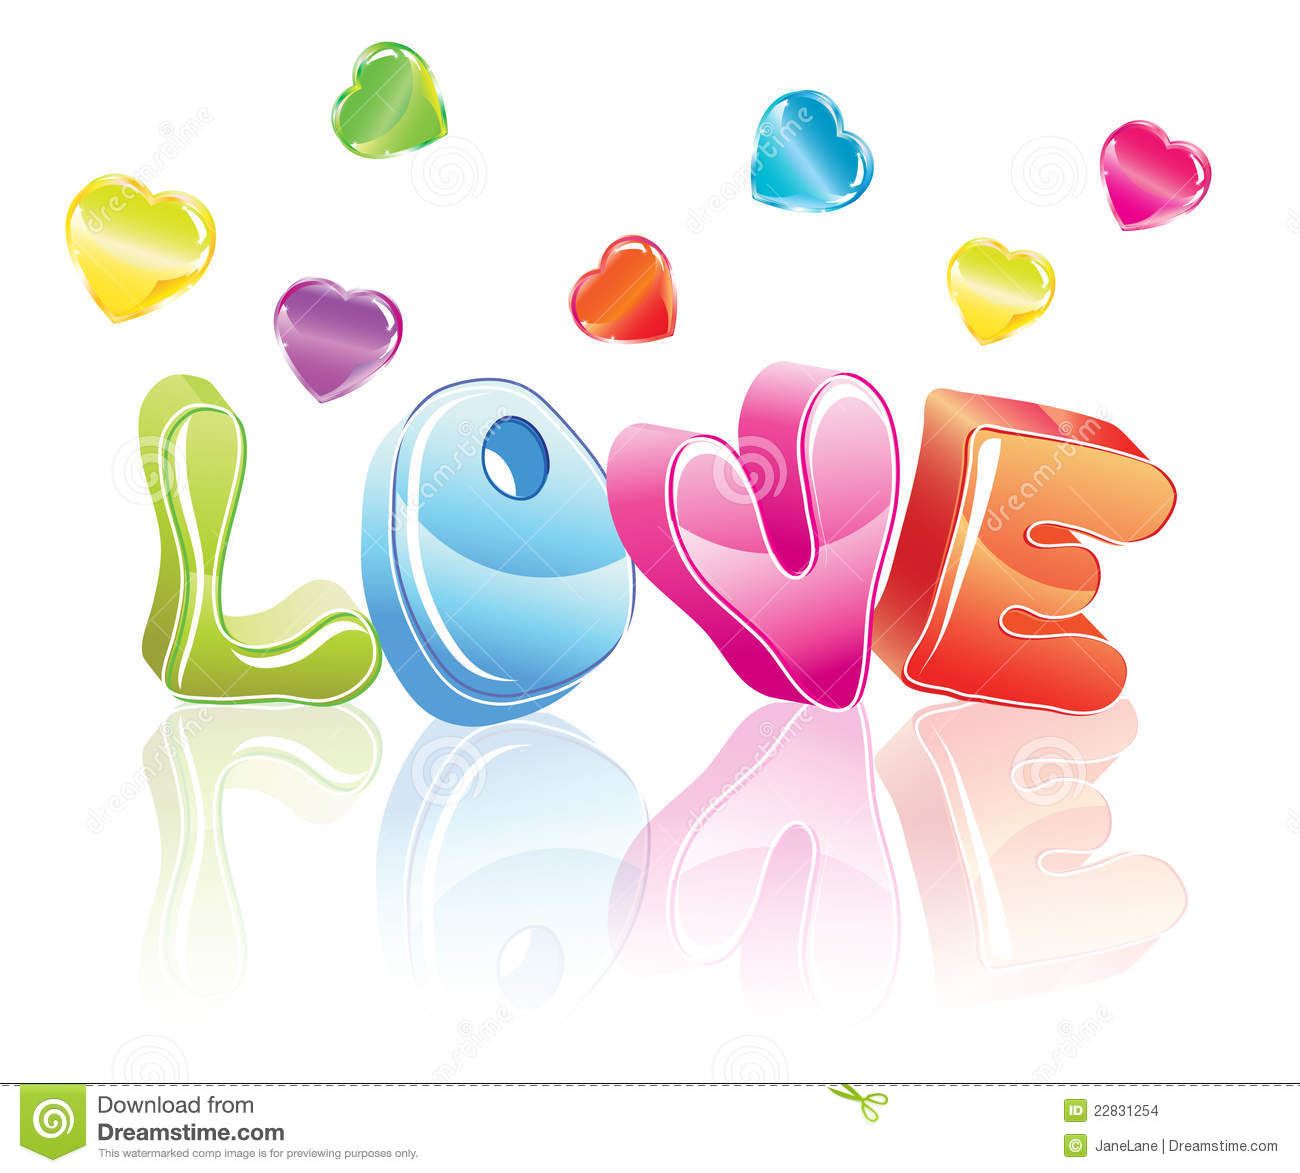 Download Free Sweet Home 3d Sweet Home 3d 4 1 Download: 3d Love Word Stock Images